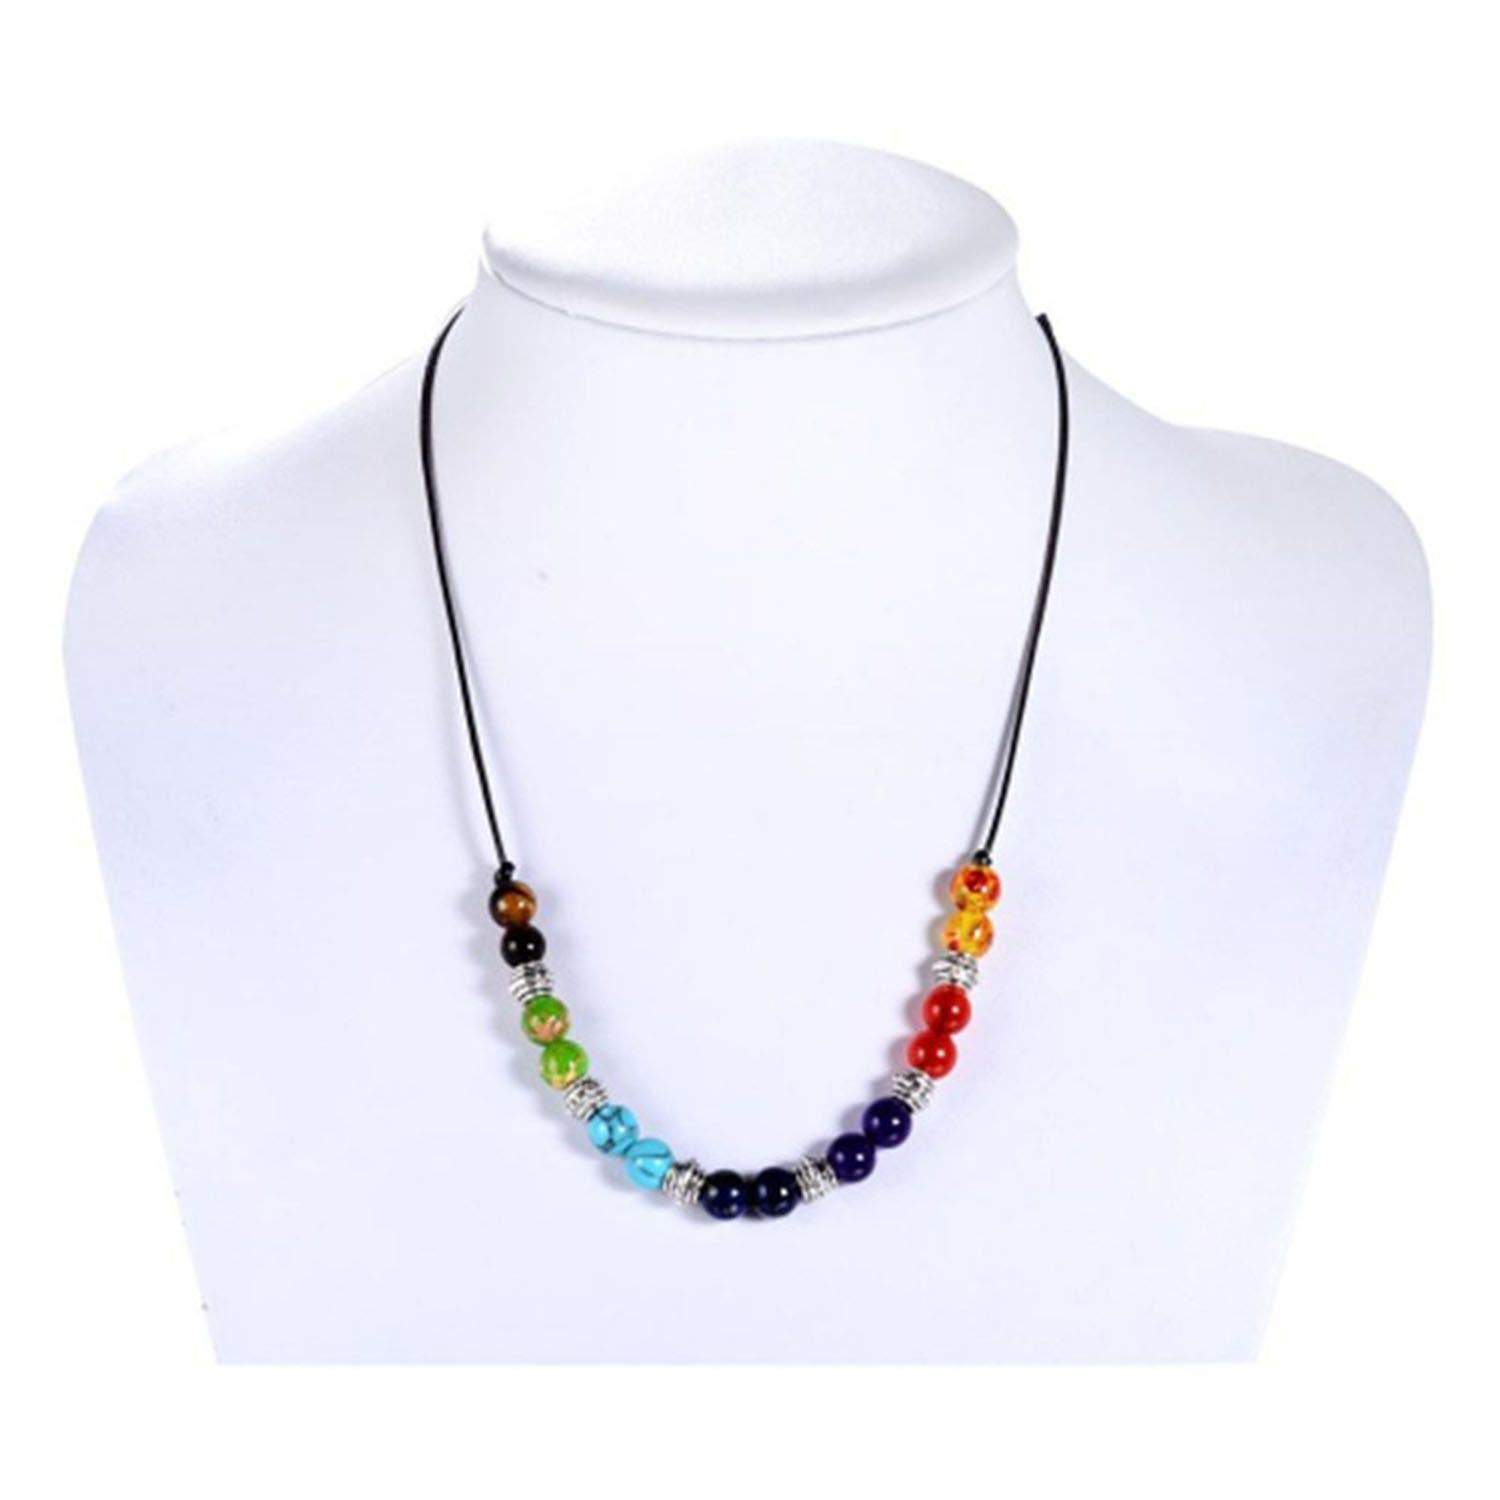 Necklace 7 Colors Beads Natural Stone Pendant Necklaces Balancing Necklace for Women Men Jewelry Gift Natural Stone